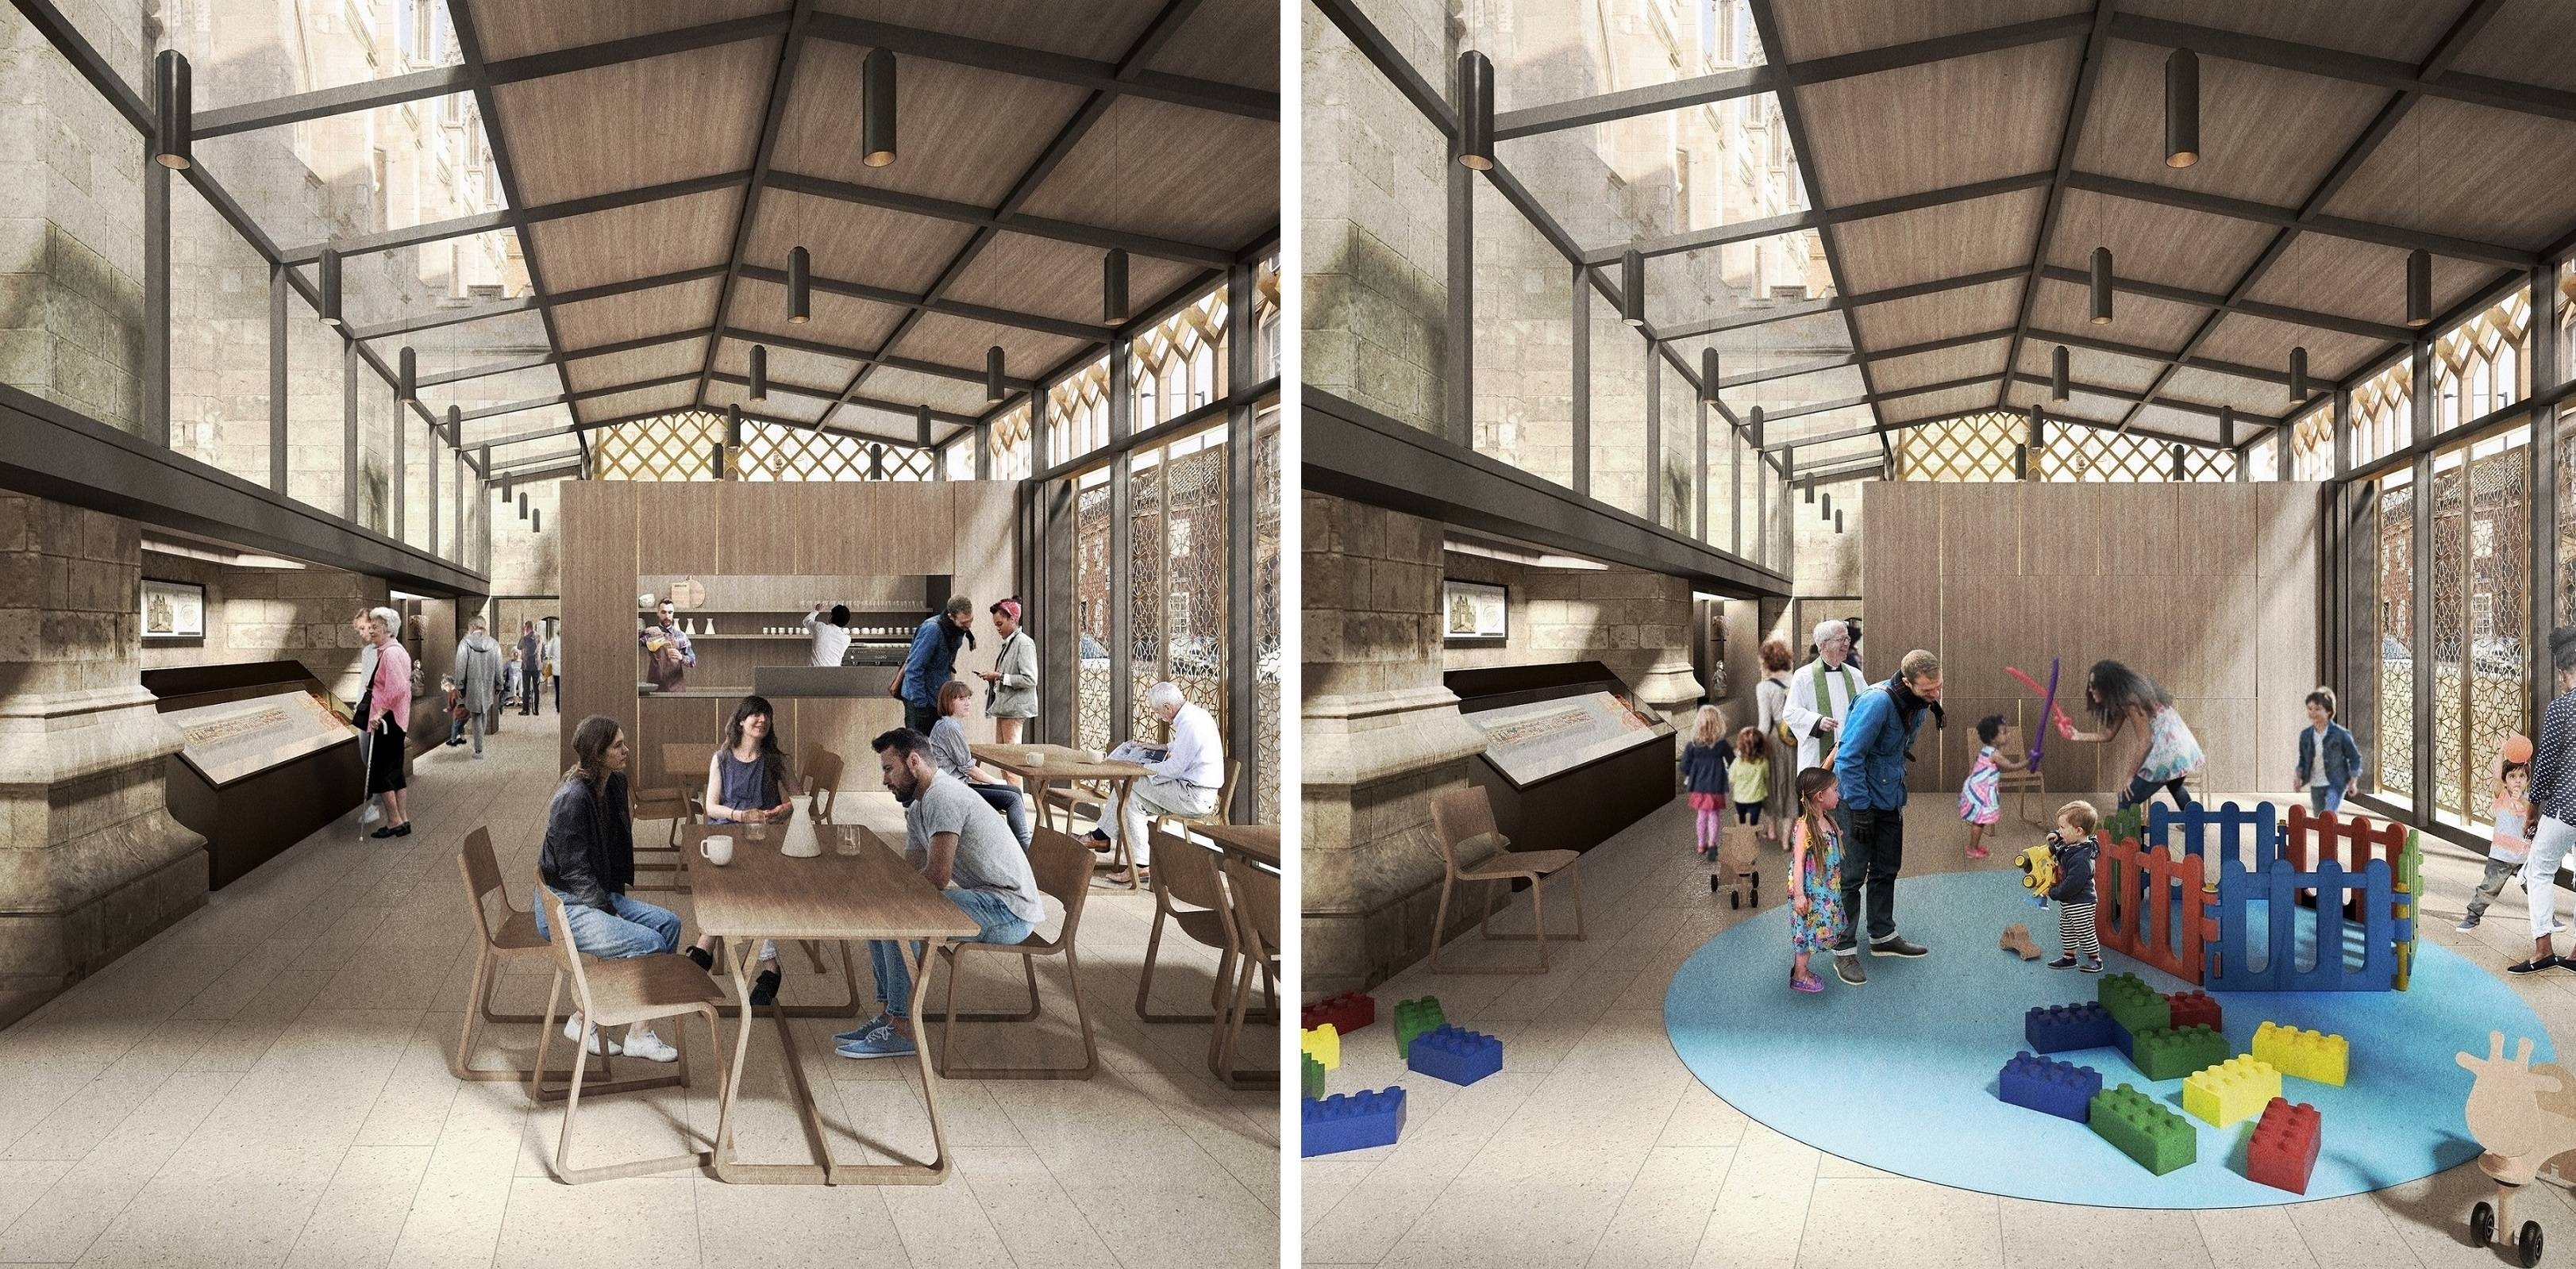 The new visitor and heritage centre will enable Hull Minster to accommodate a broader range of community activities, including for families.